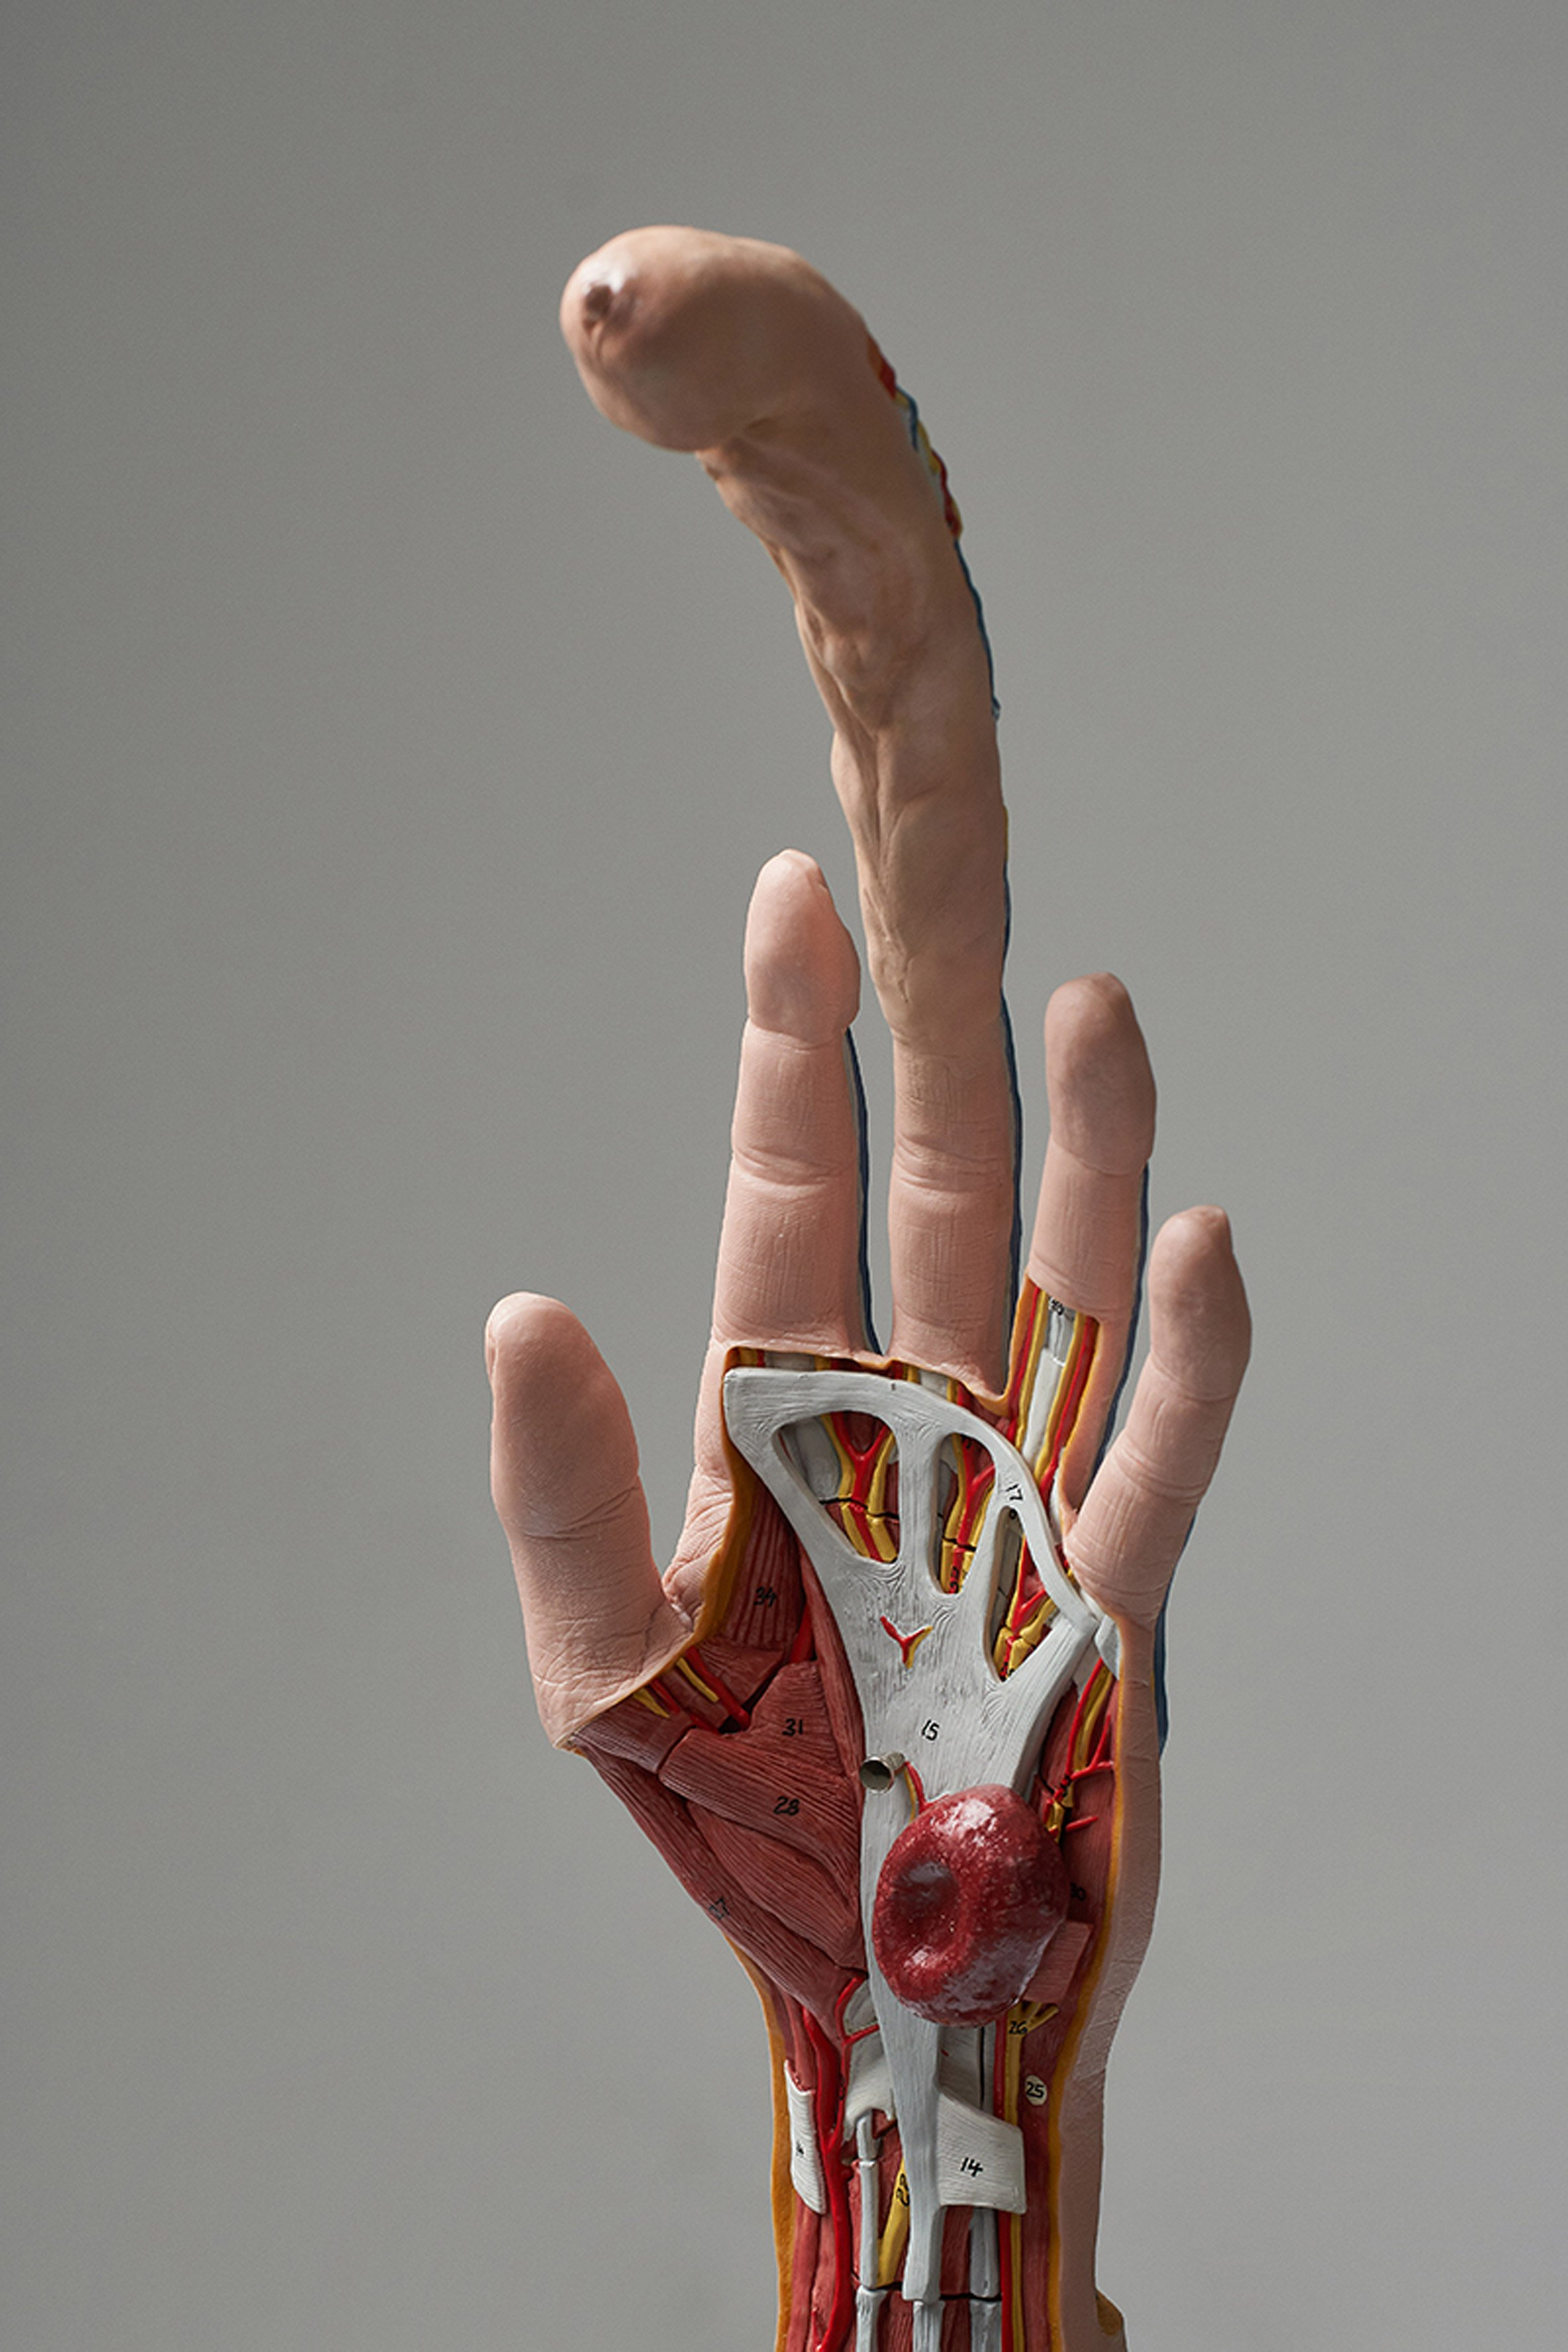 Seeding Finger is a hand-shaped tool for artificial insemination